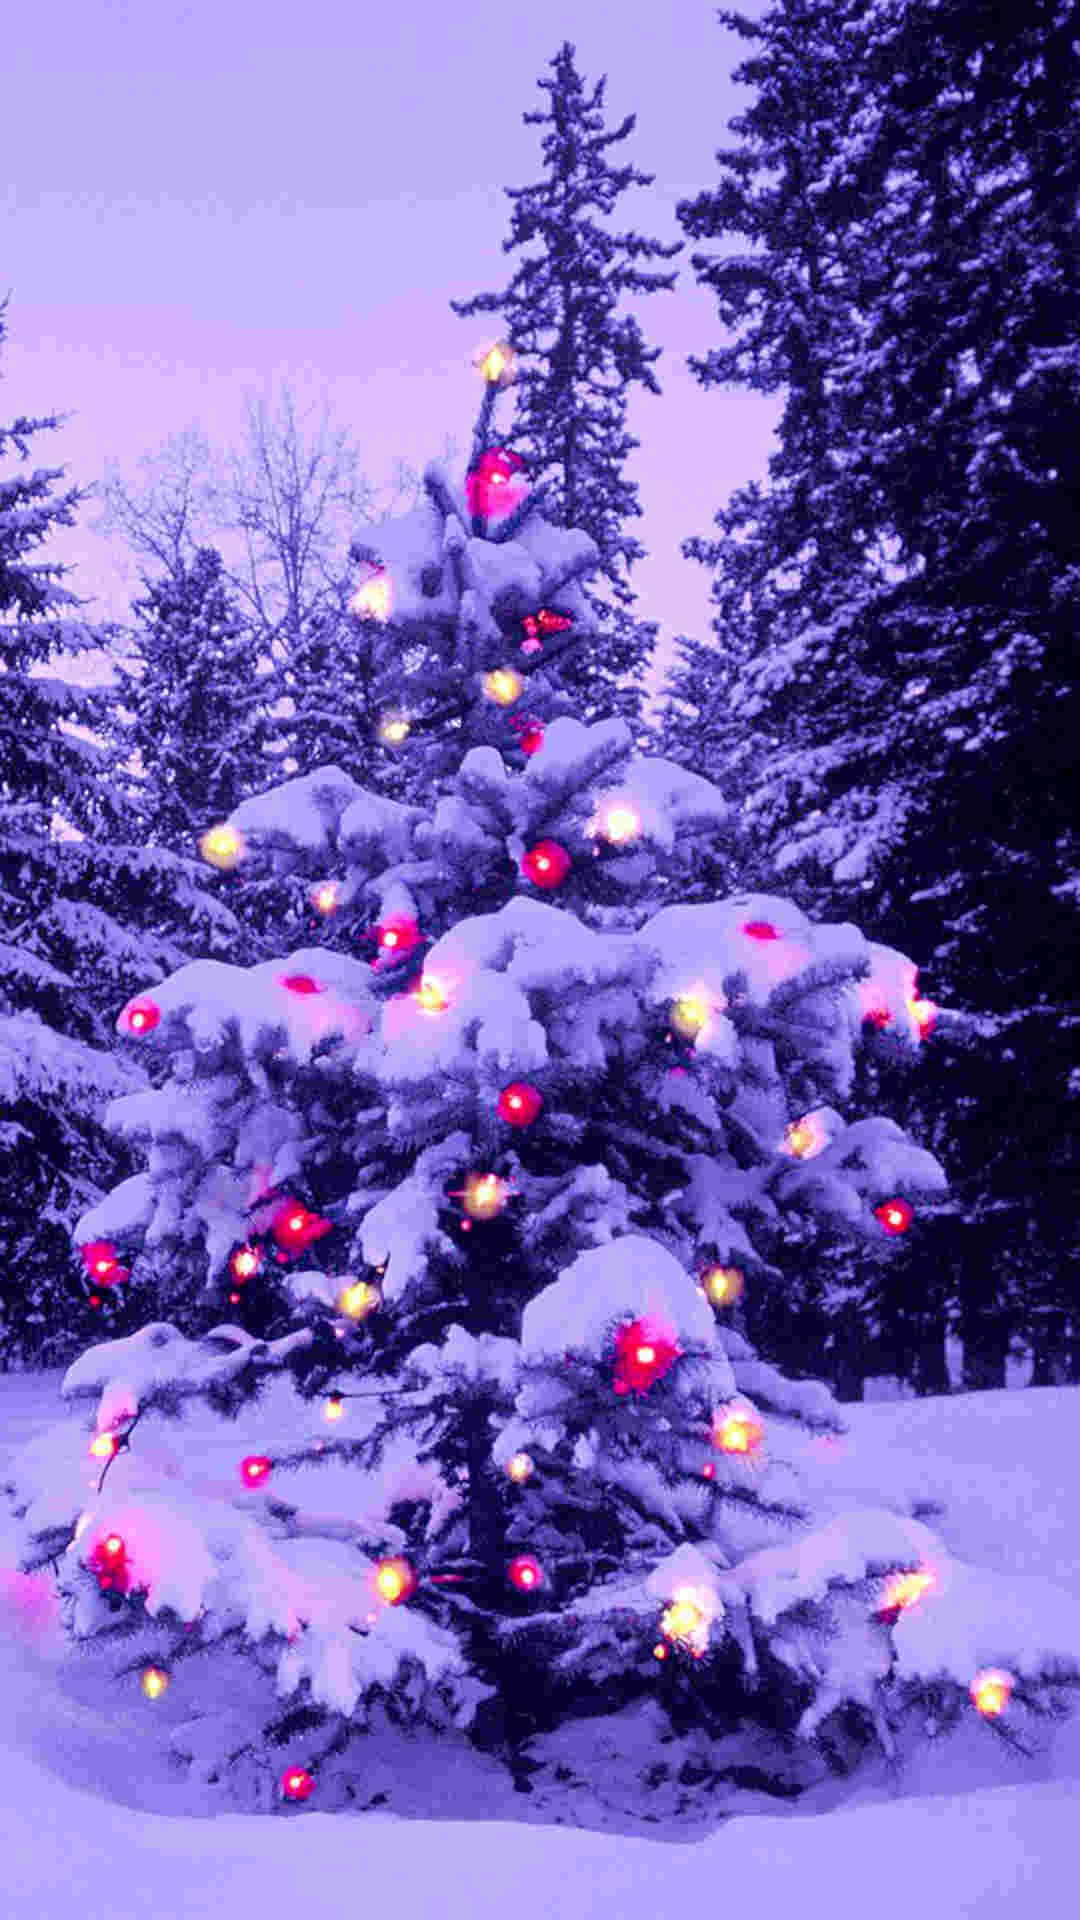 ihihbm christmas iphone wallpaper high quality resolution merry christmas